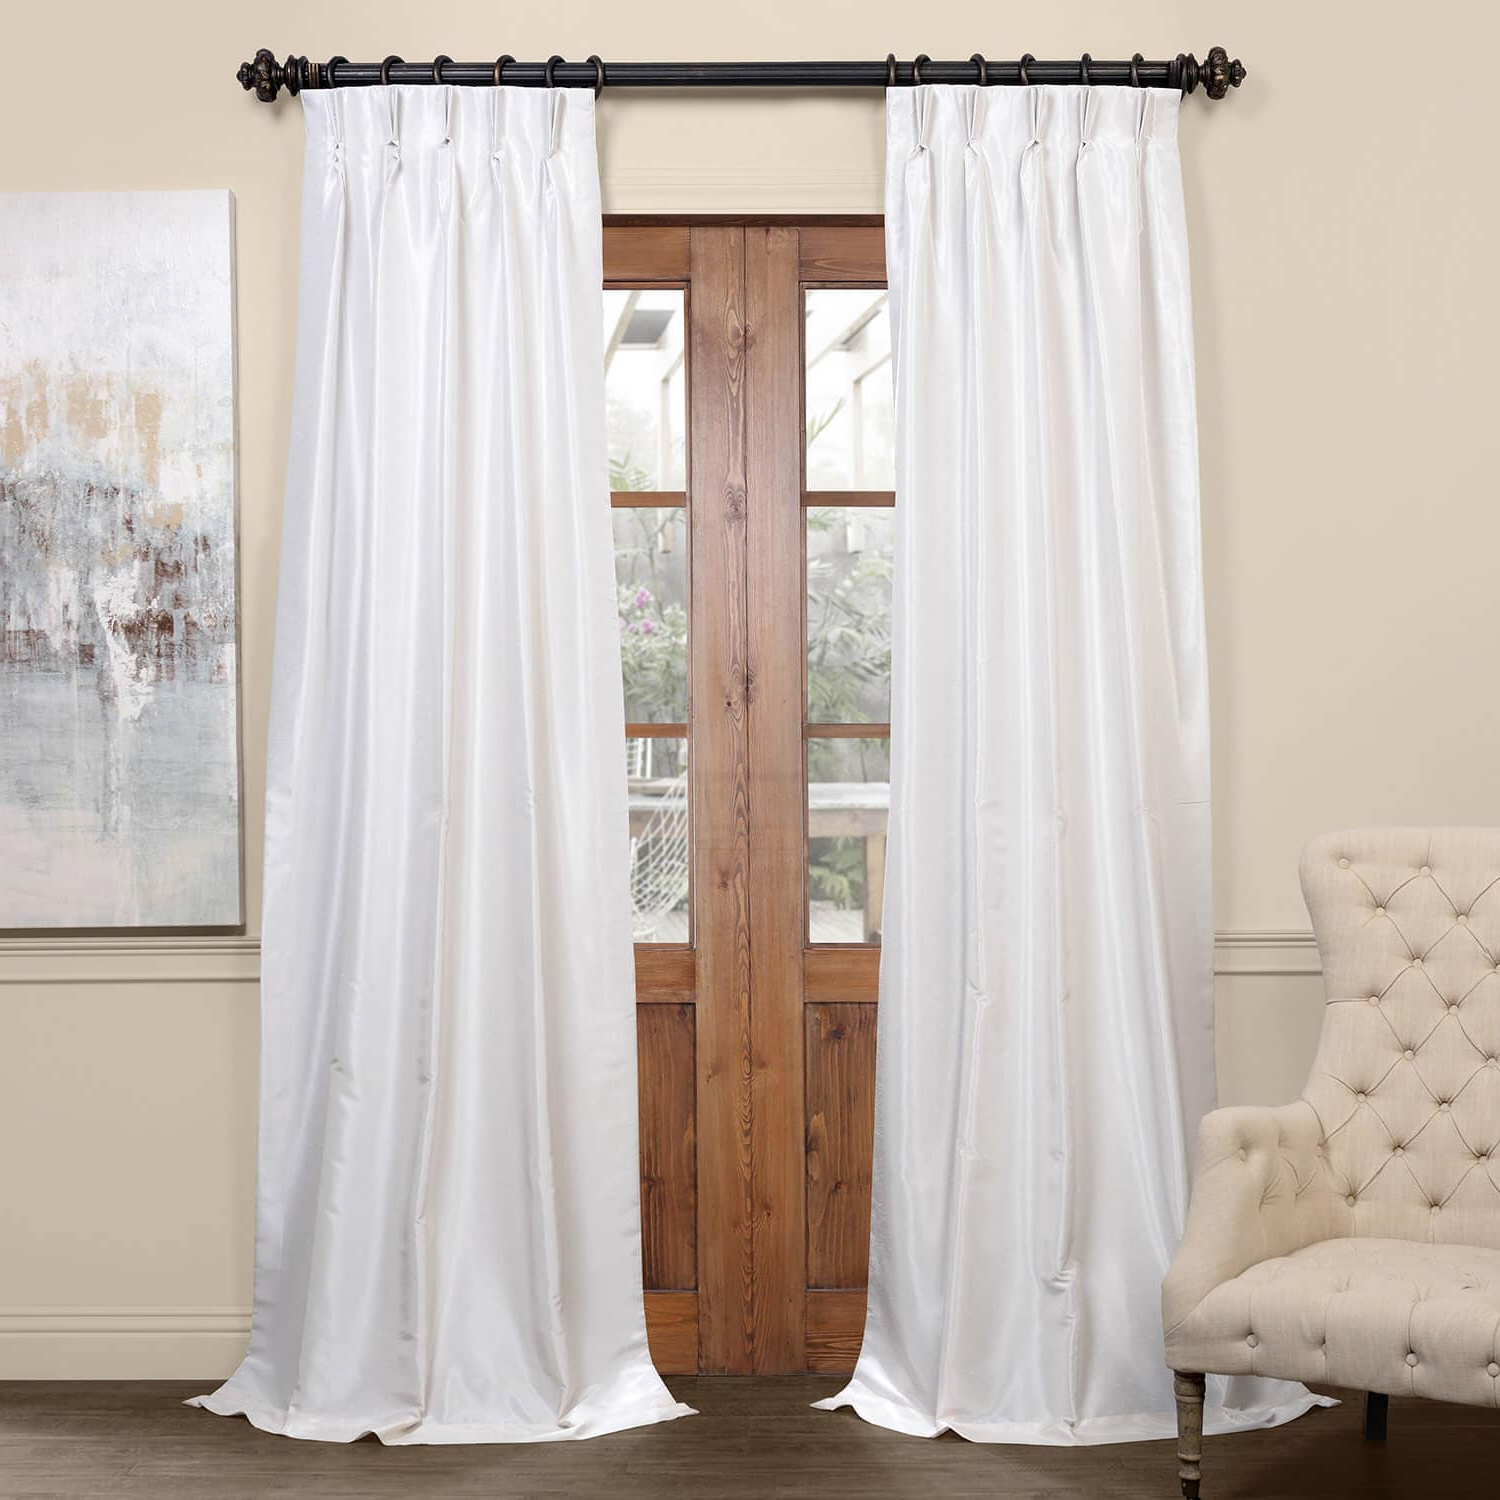 True Blackout Vintage Textured Faux Silk Curtain Panels With 2020 Off White Blackout Vintage Textured Faux Dupioni Pleated Curtain (View 10 of 20)